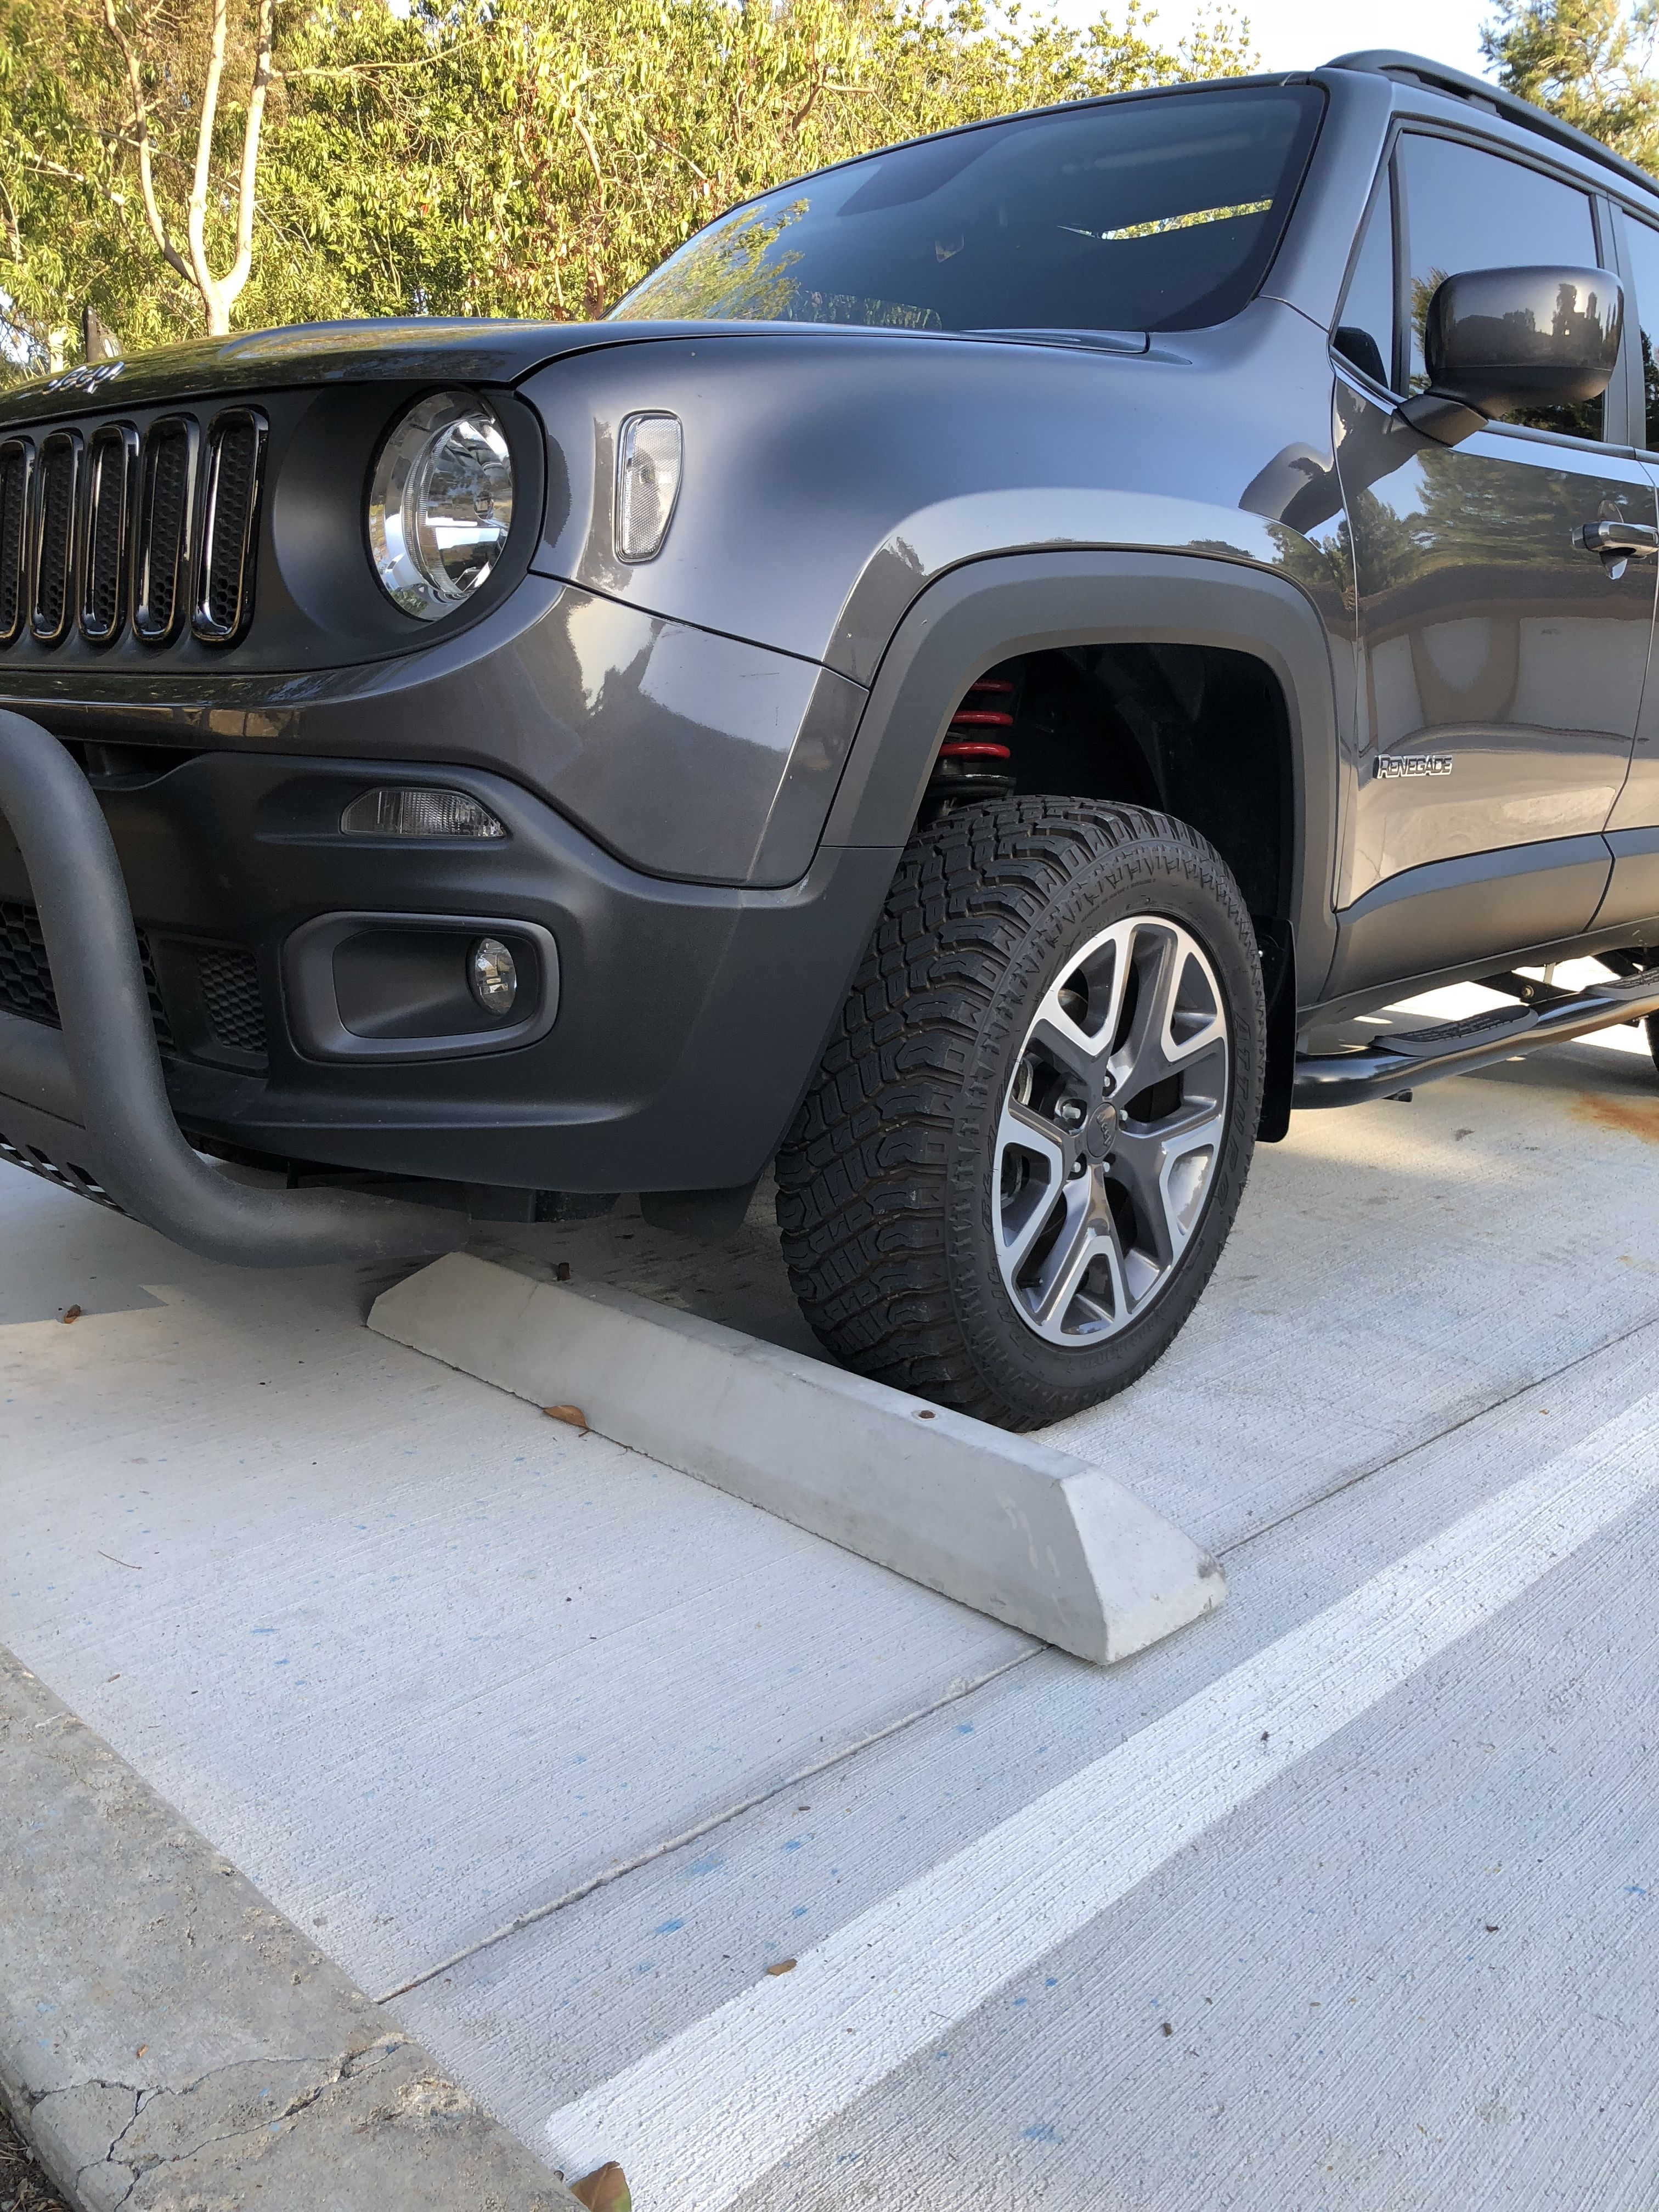 Pin By Fxtonex On Jeep Renegade Jeep Renegade Jeep Car